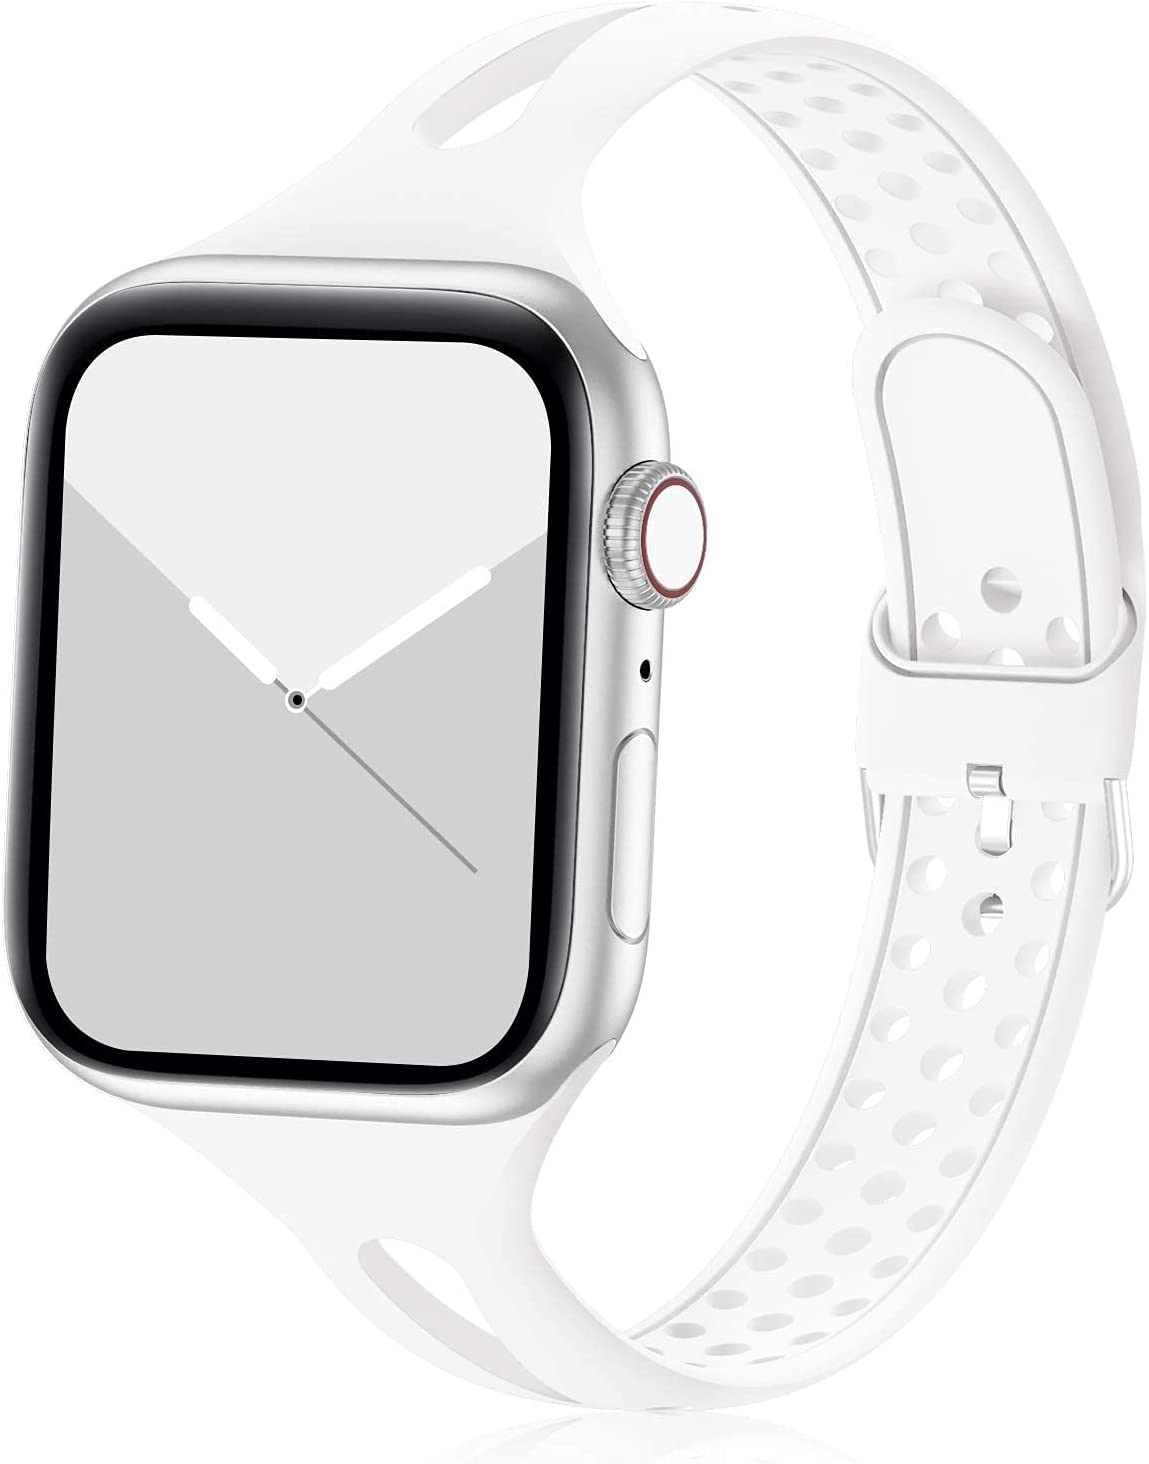 Bandiction Compatible with Apple Watch Bands 38mm 40mm Series 5 Series 3, Women Slim Silicone Sport Band Breathable iWatch Bands 38MM 40MM Narrow Watch Strap for iWatch Series 6 SE 5 4 3 2 1